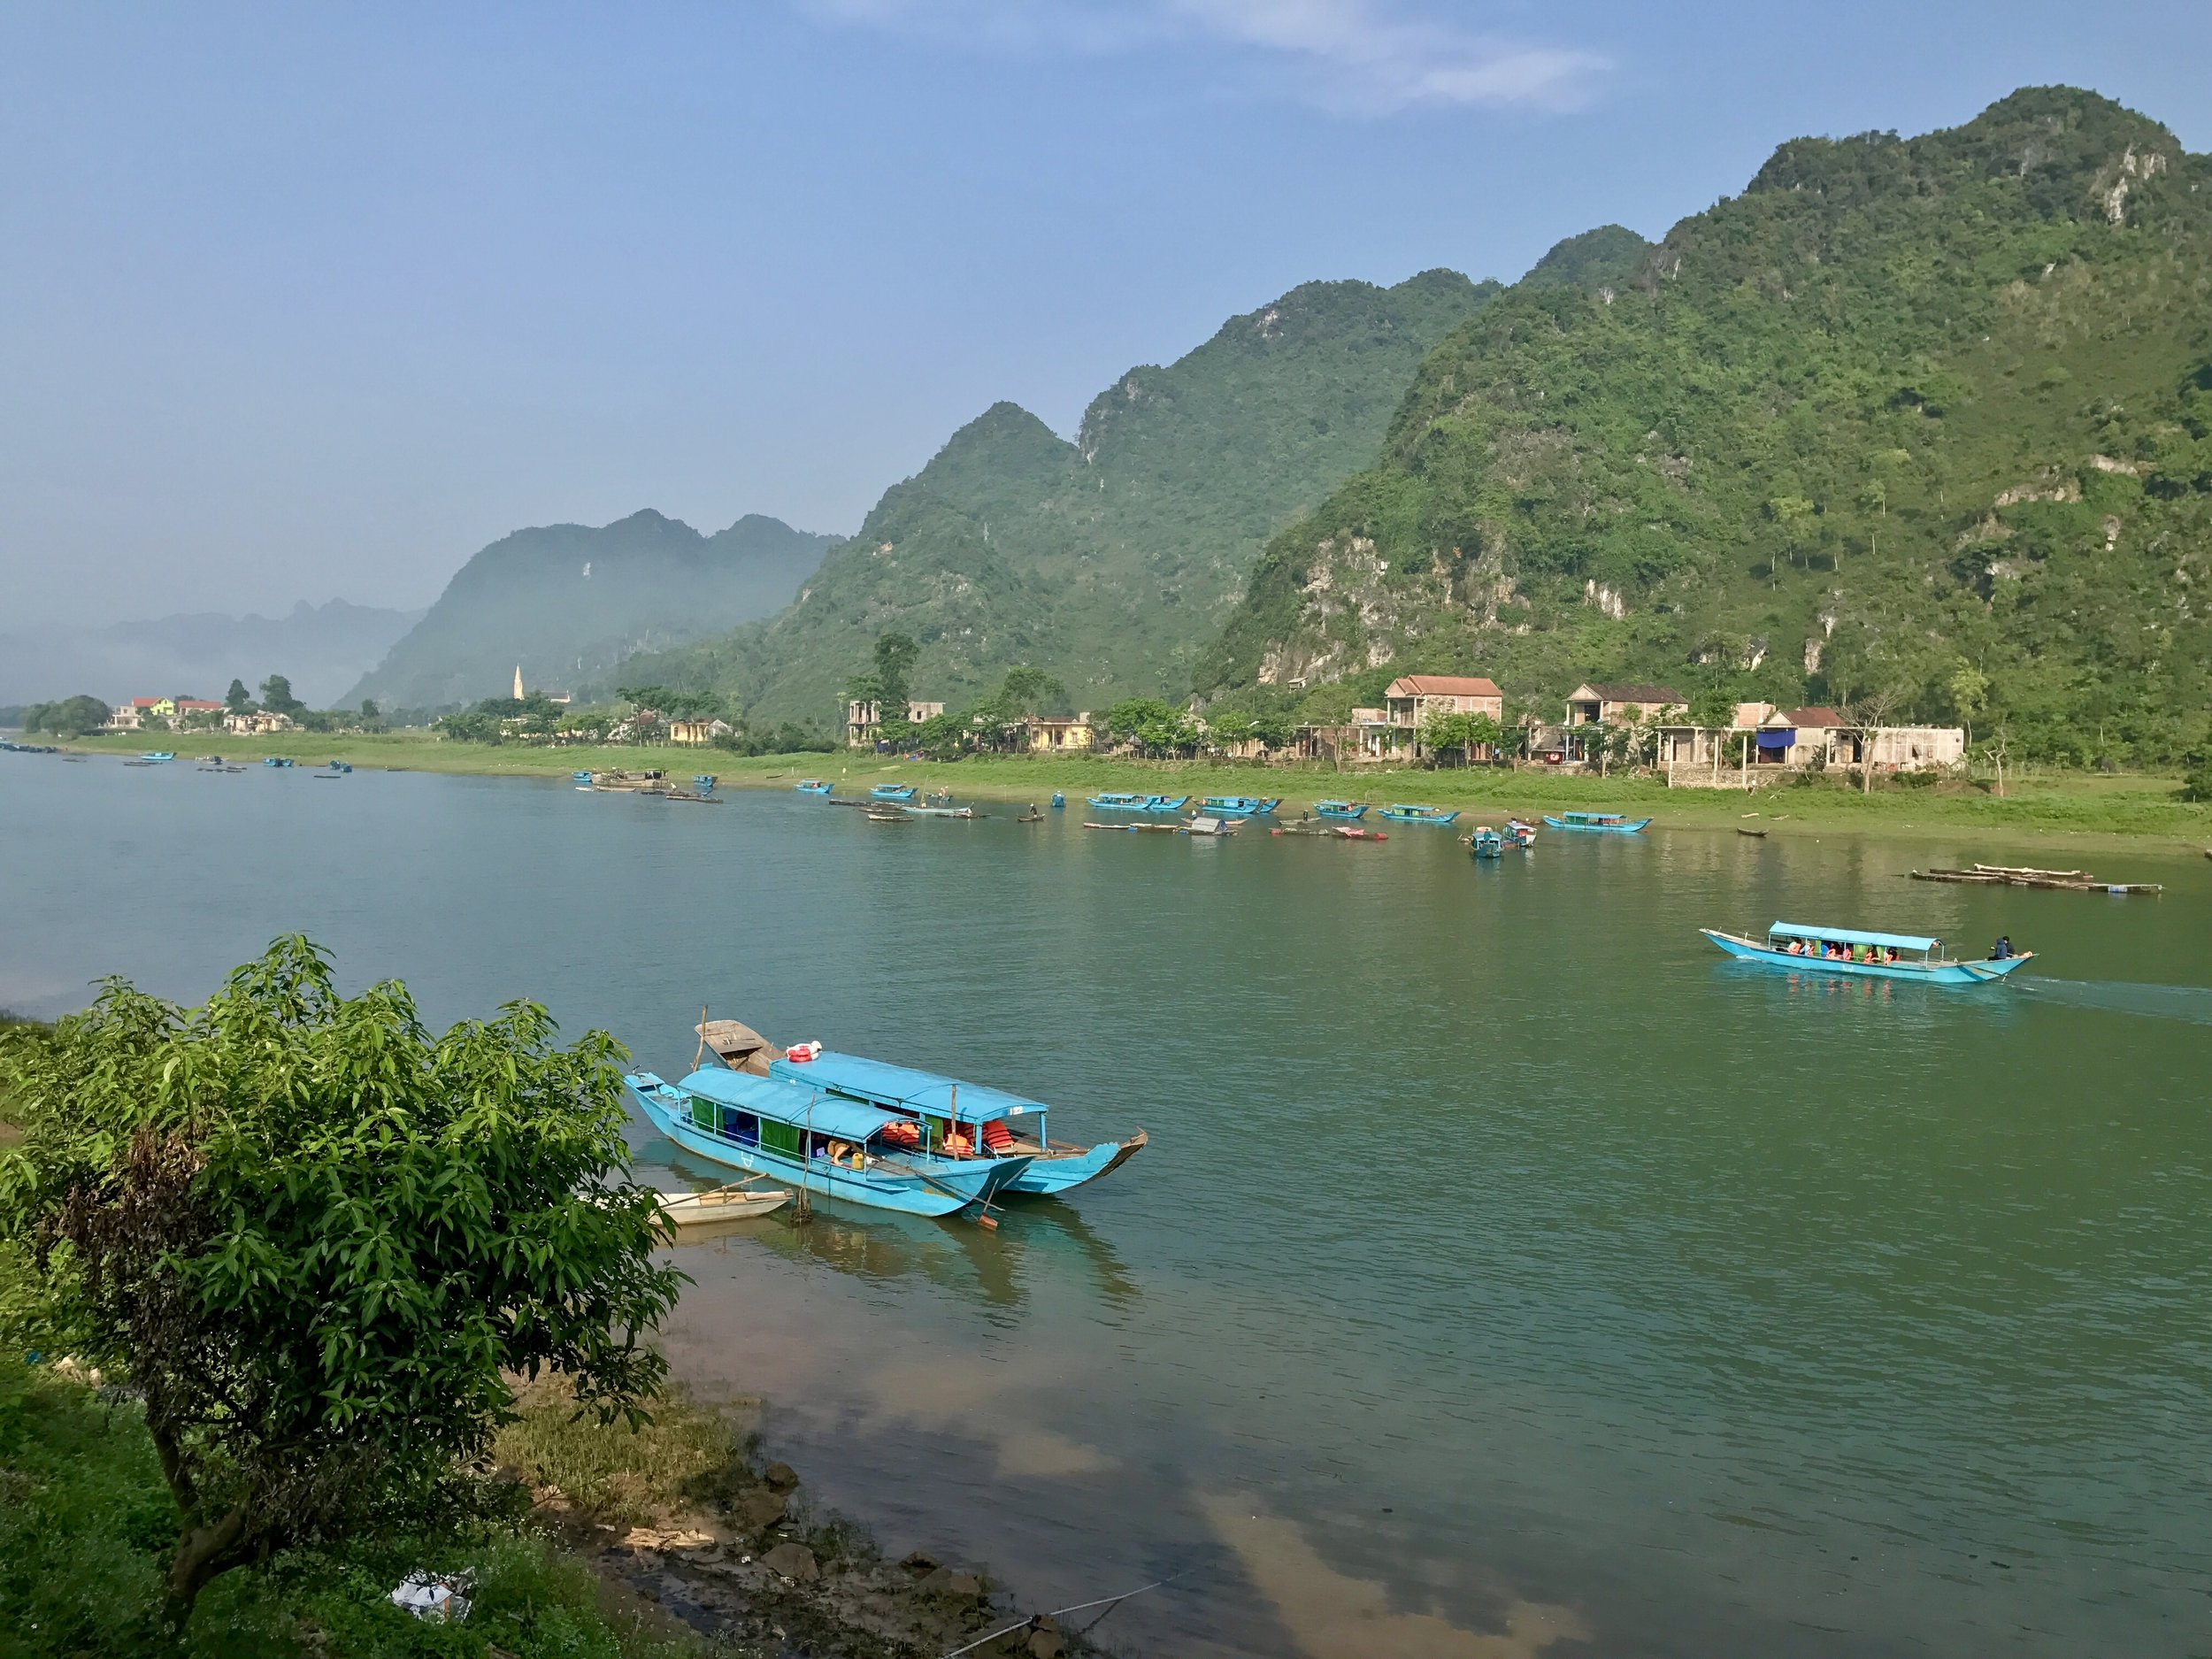 View from the Phong Nha Coco House where we stayed